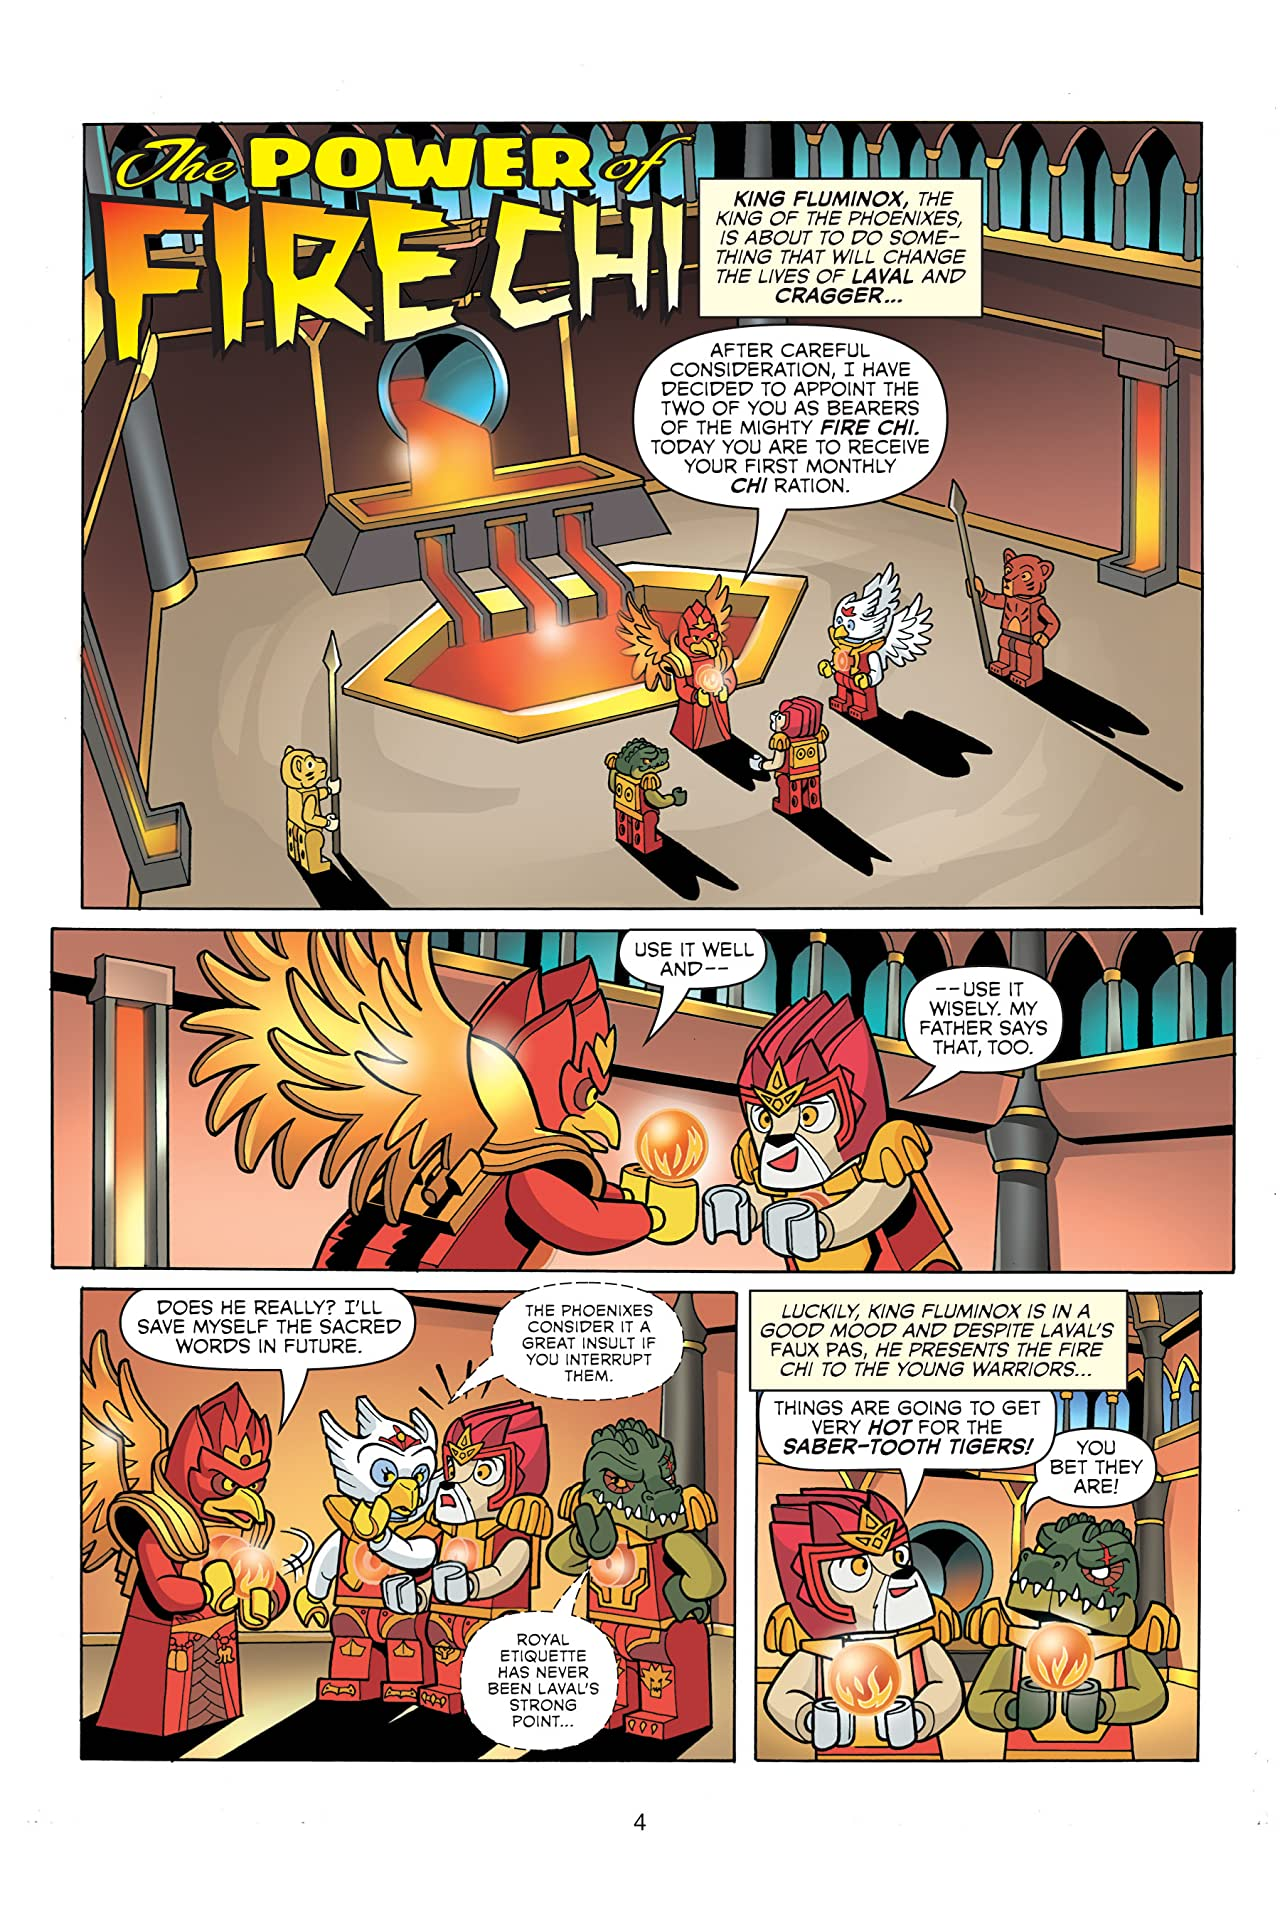 LEGO Legends of Chima Vol. 4: The Power of Fire Chi